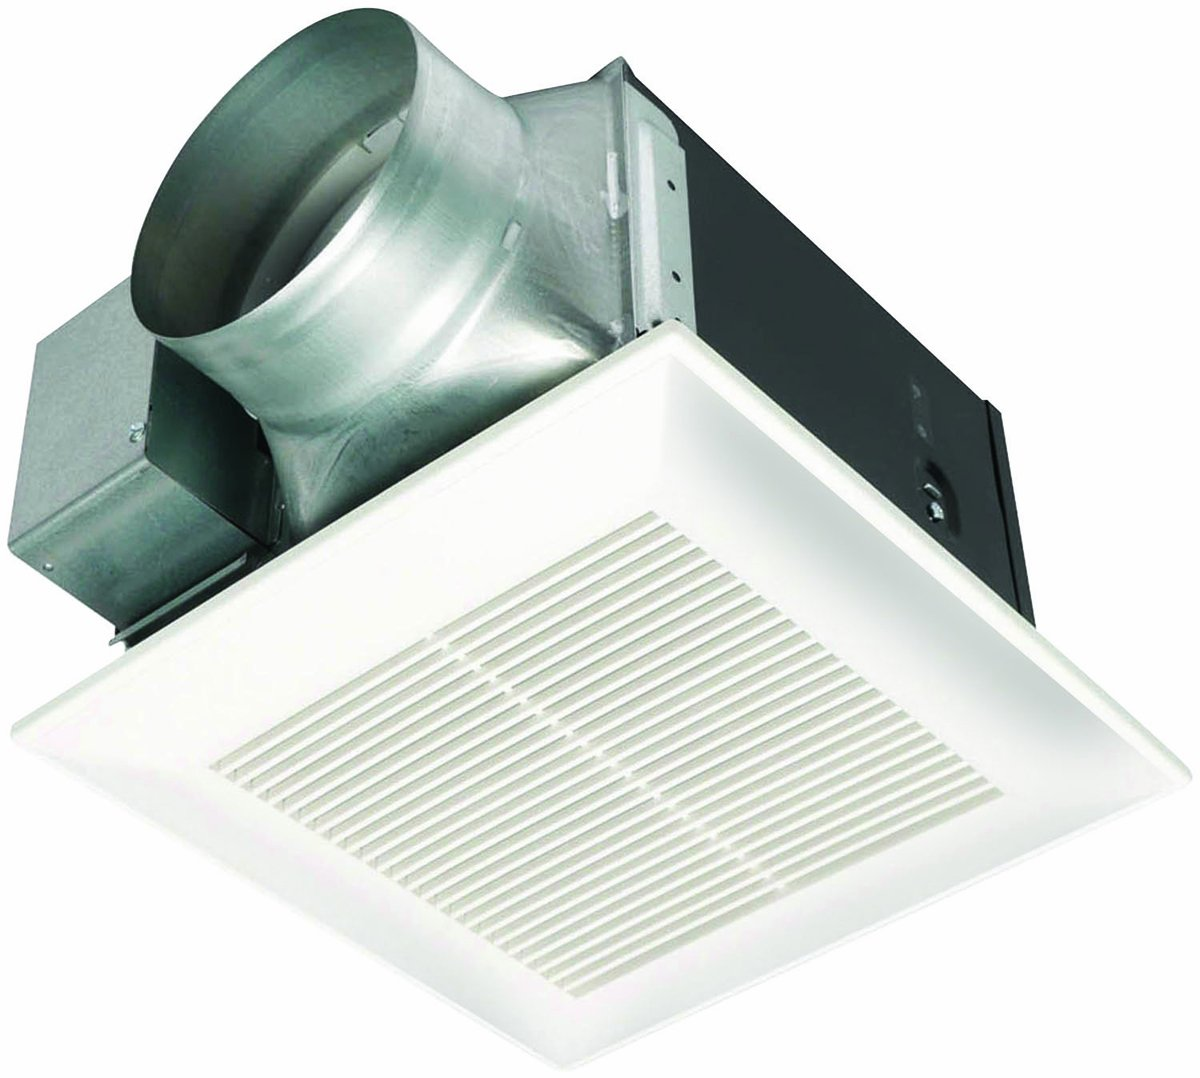 Cook bathroom exhaust fans - The 50 Top Fan And Ventilation Systems